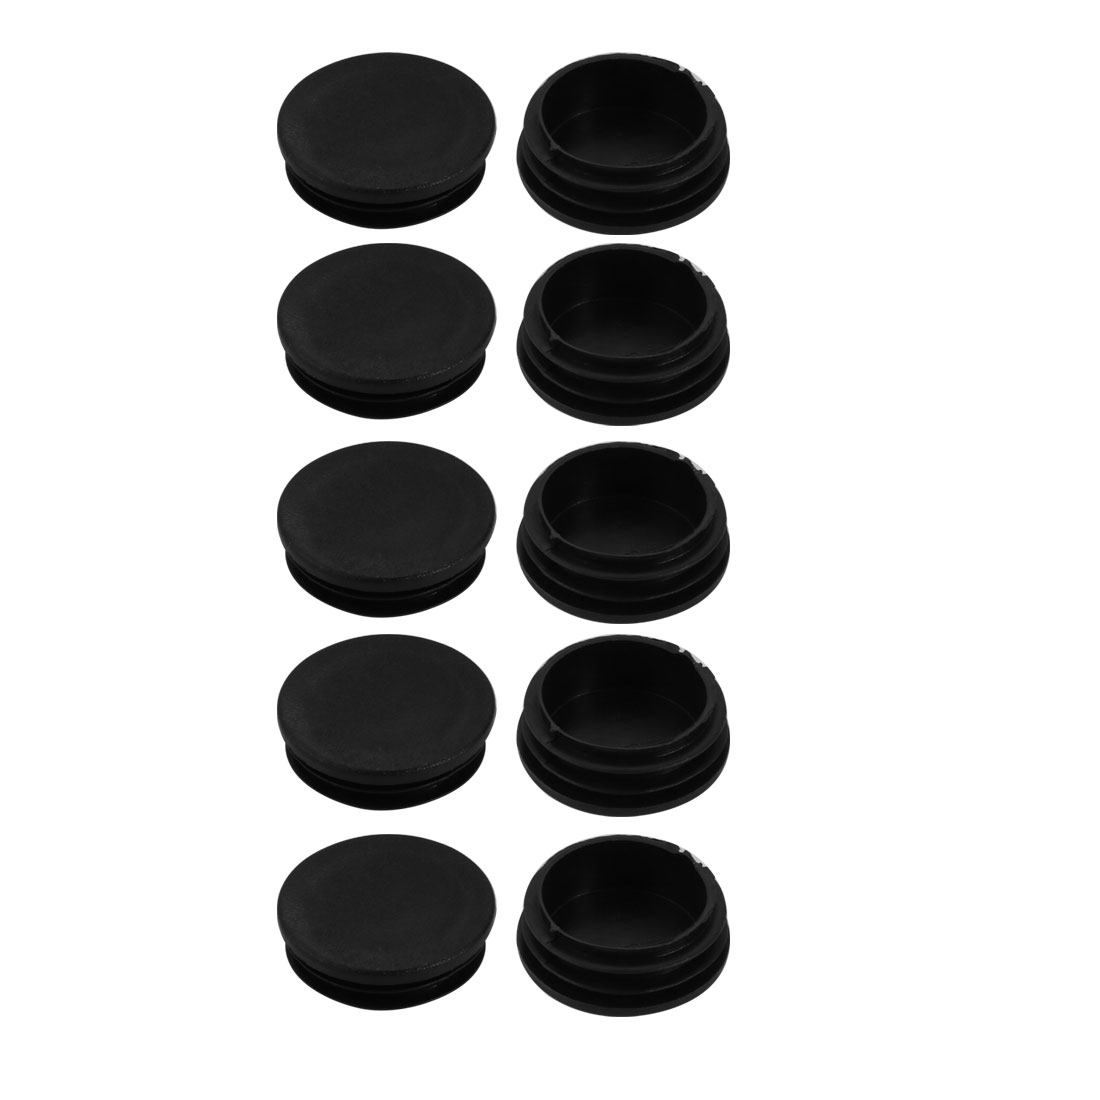 10pcs 48mm Diameter Ribbed Tube Insert Chair Leg Cap Round Black PVC Tubing Plug